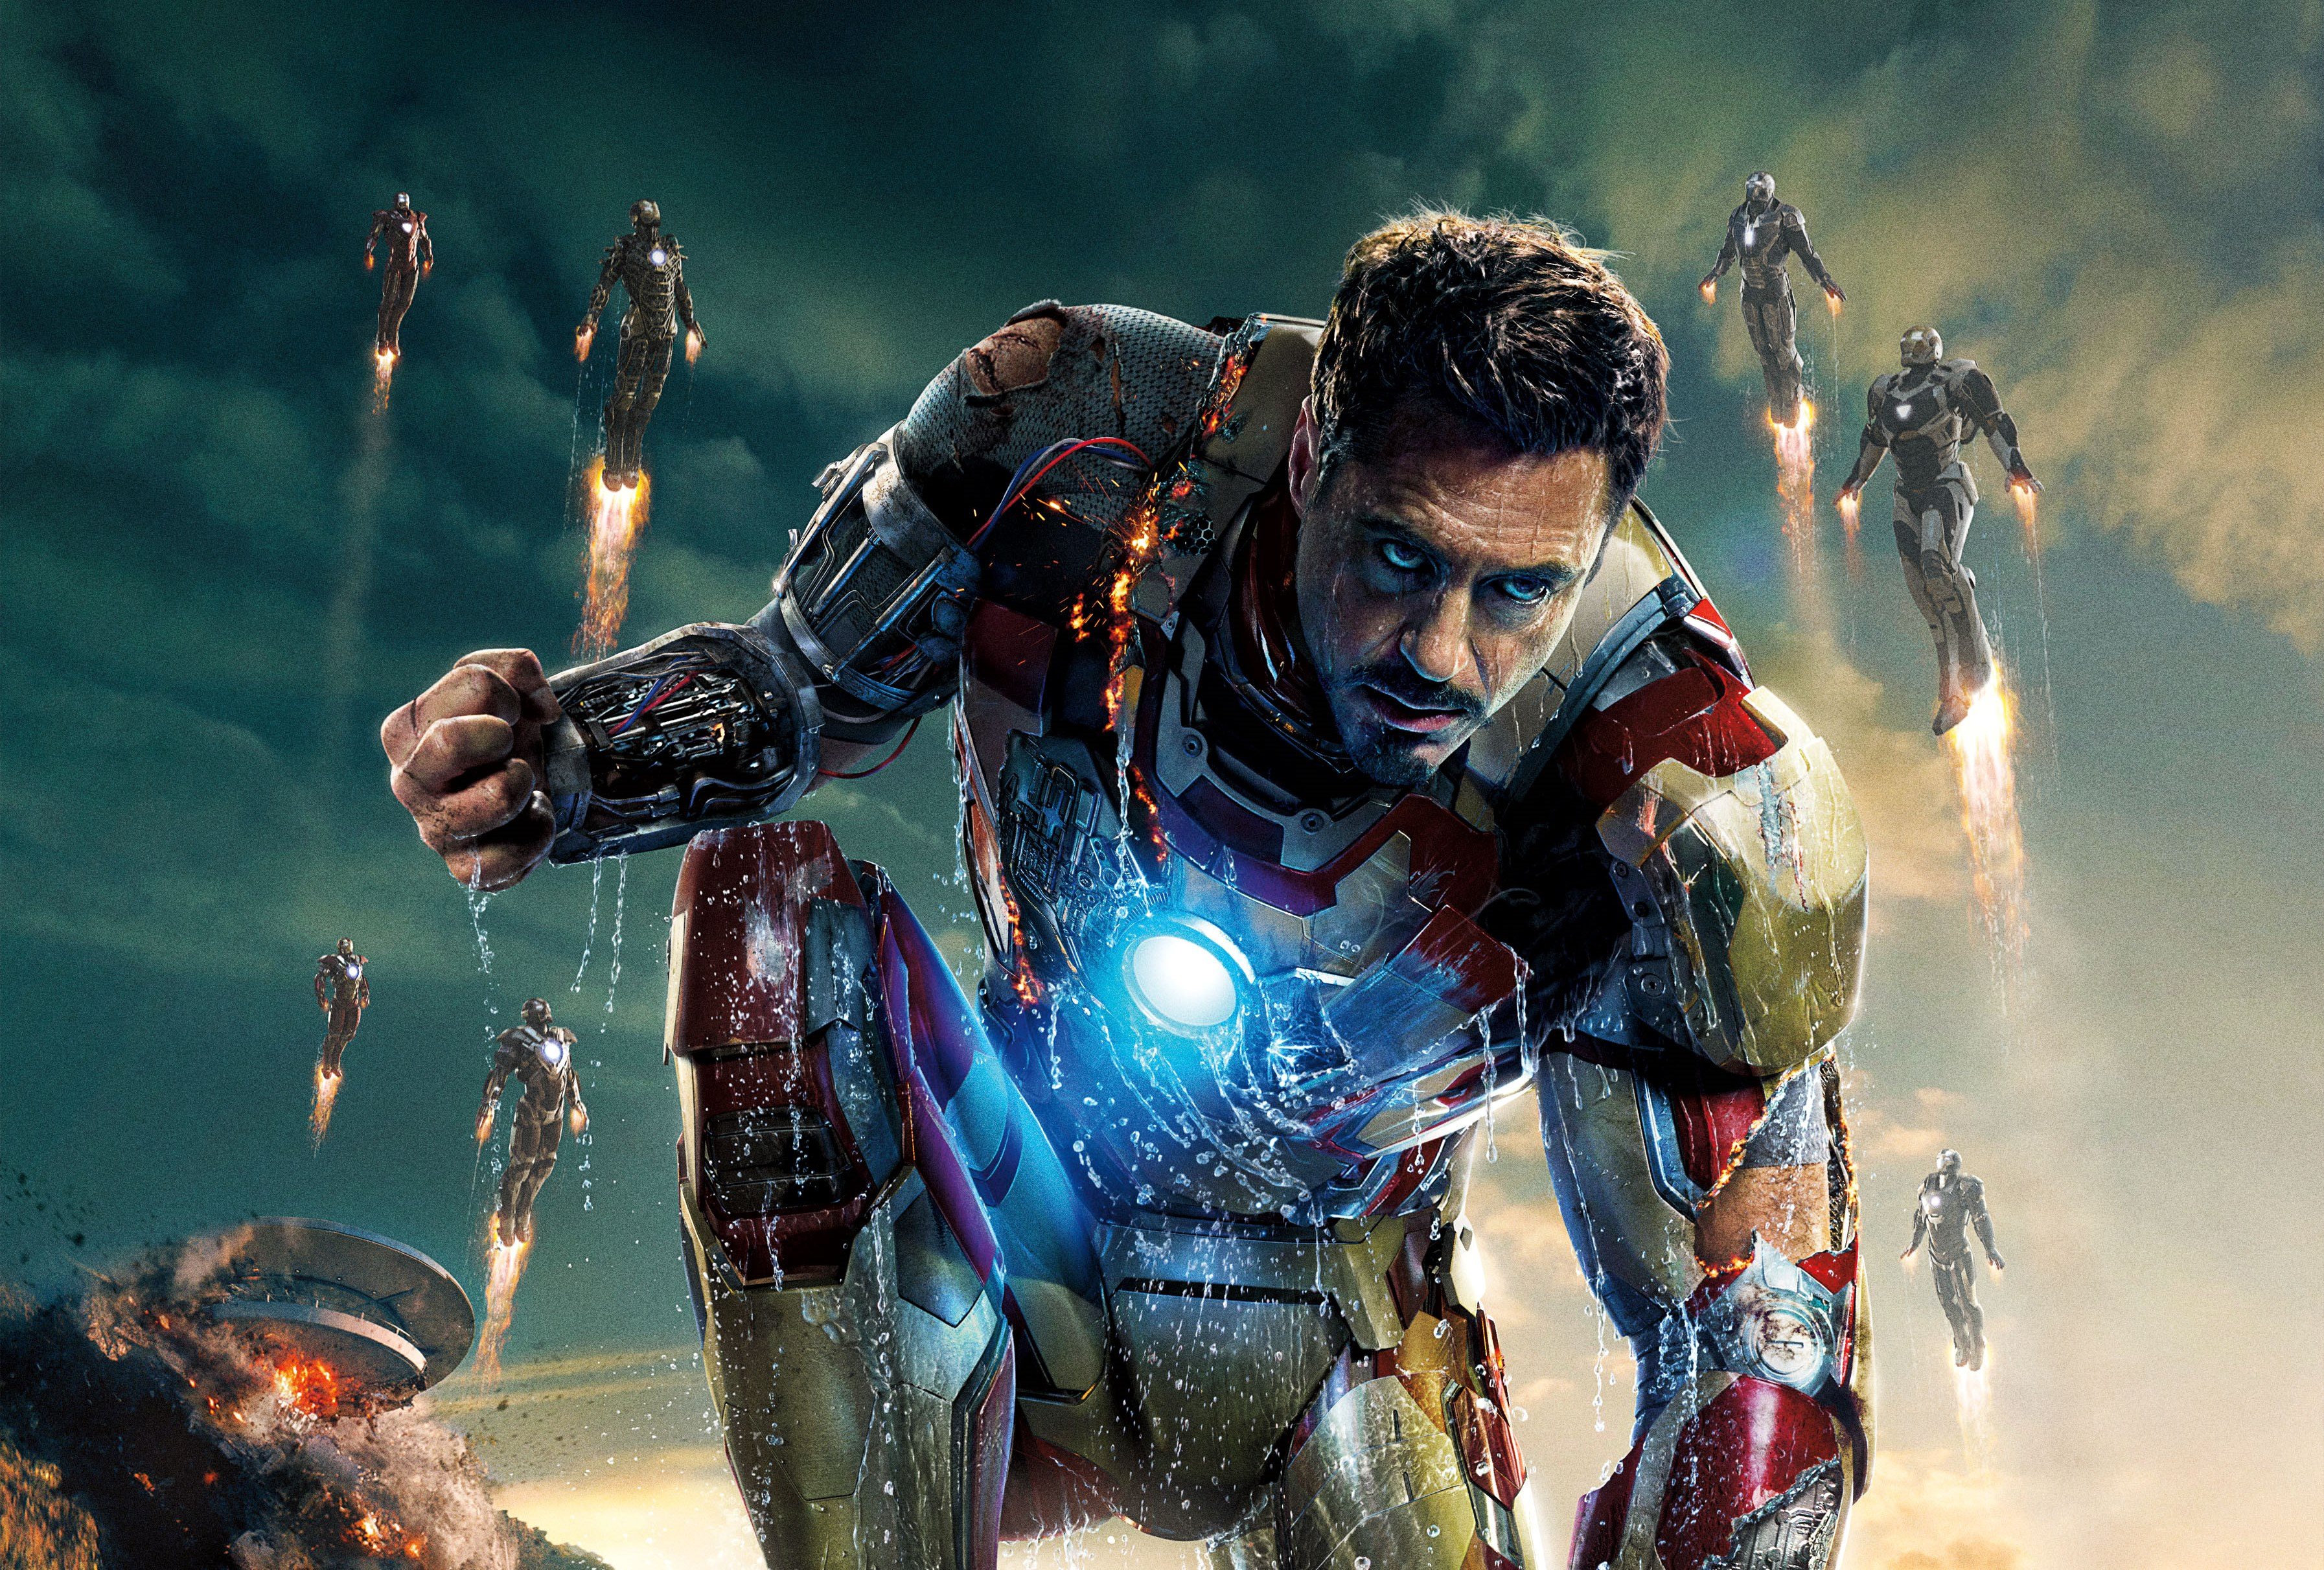 Iron man 3 amonymous film feature iron man 3 trailer 5 things weve learned voltagebd Gallery